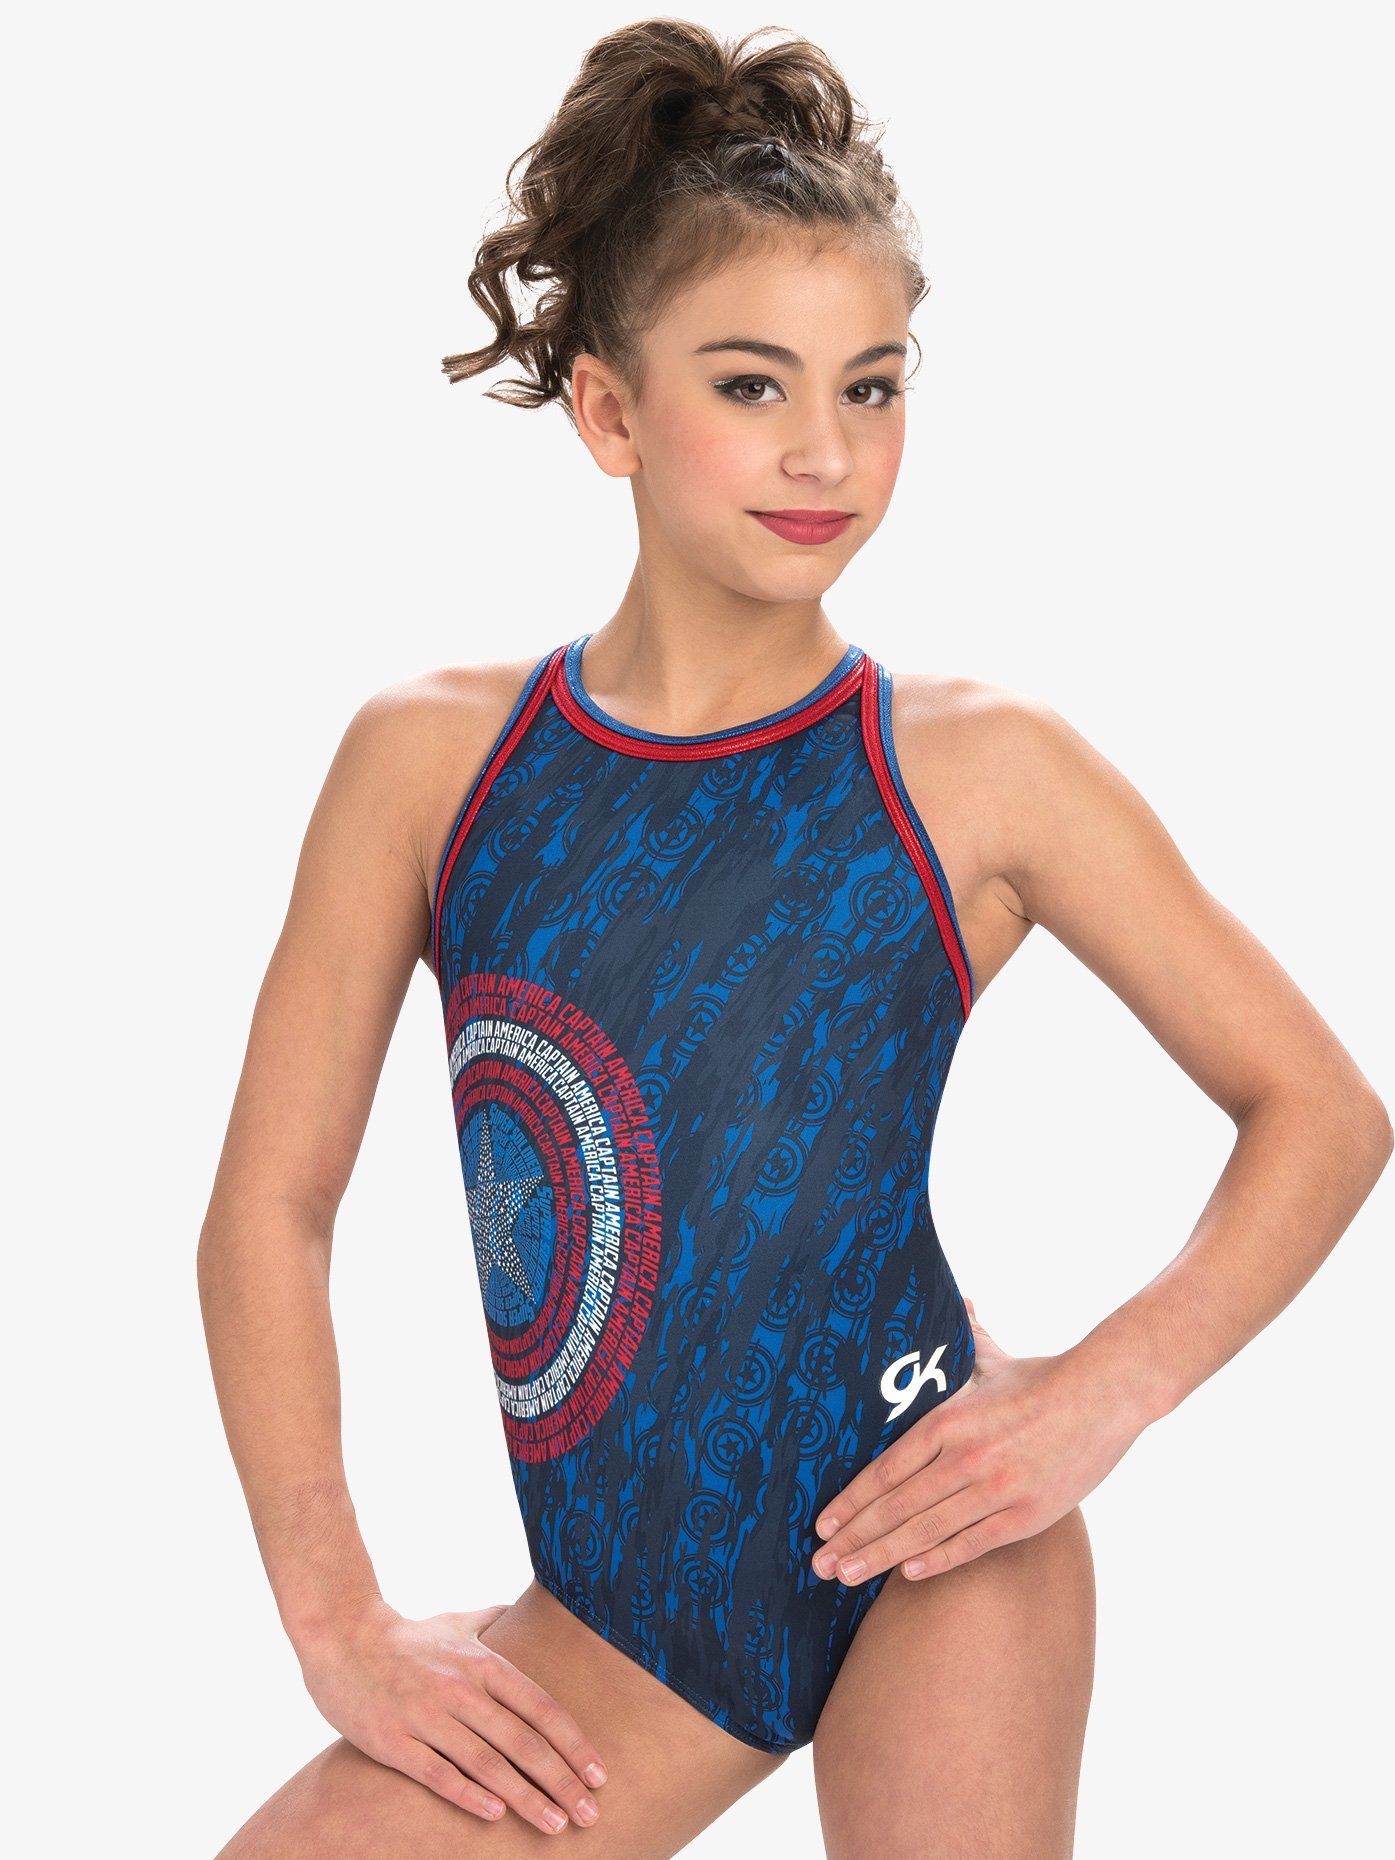 af4983c25 Marvel American Shield Leotard - Gymnastics